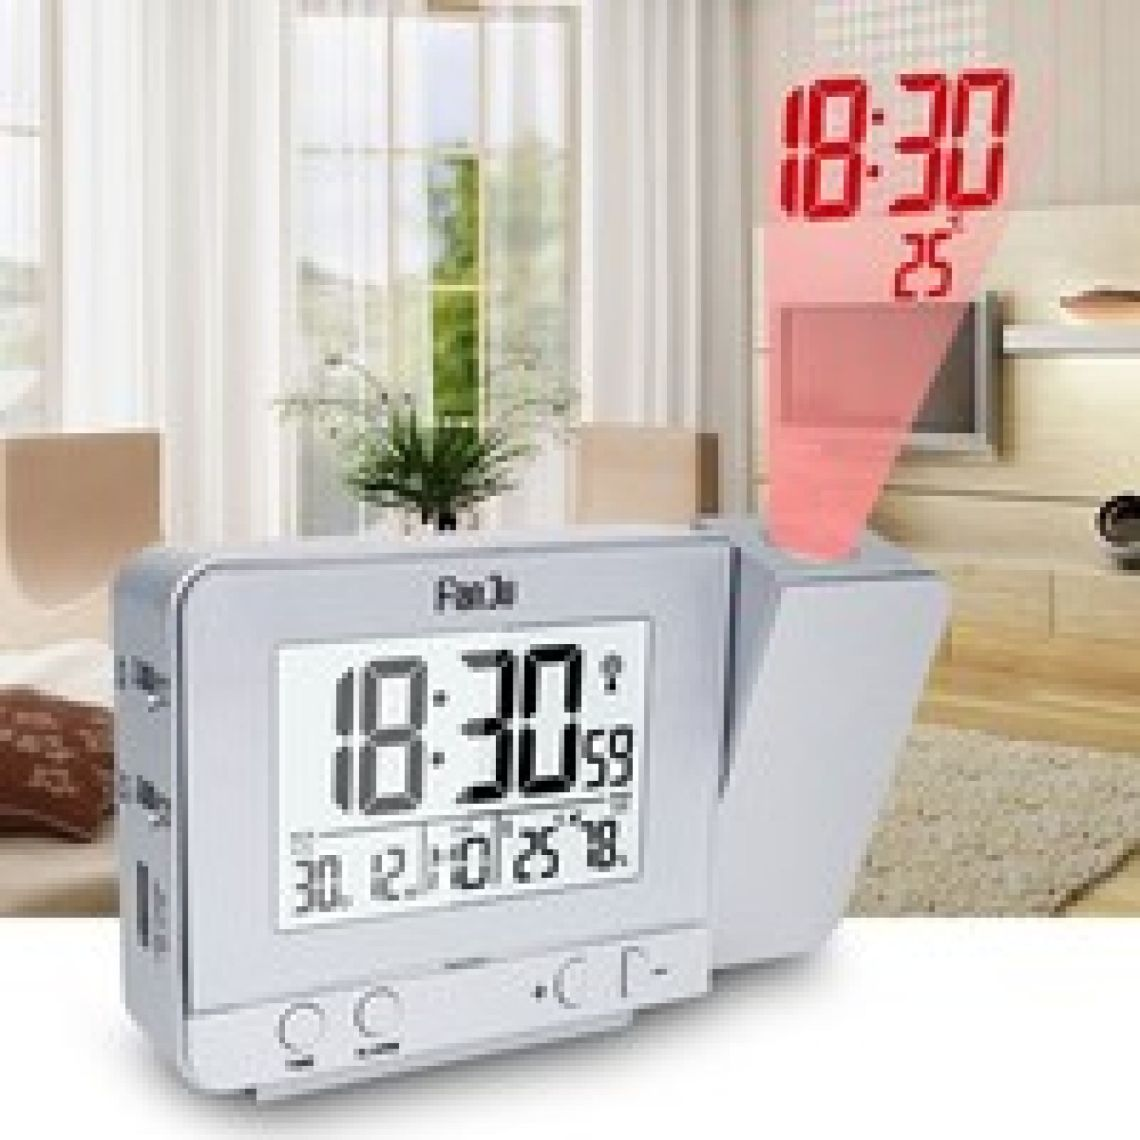 wish | FanJu FJ3531 Projection Alarm Clock with Temperature and Time Projection / USB Charger/ Indoor Temperature and Humidity